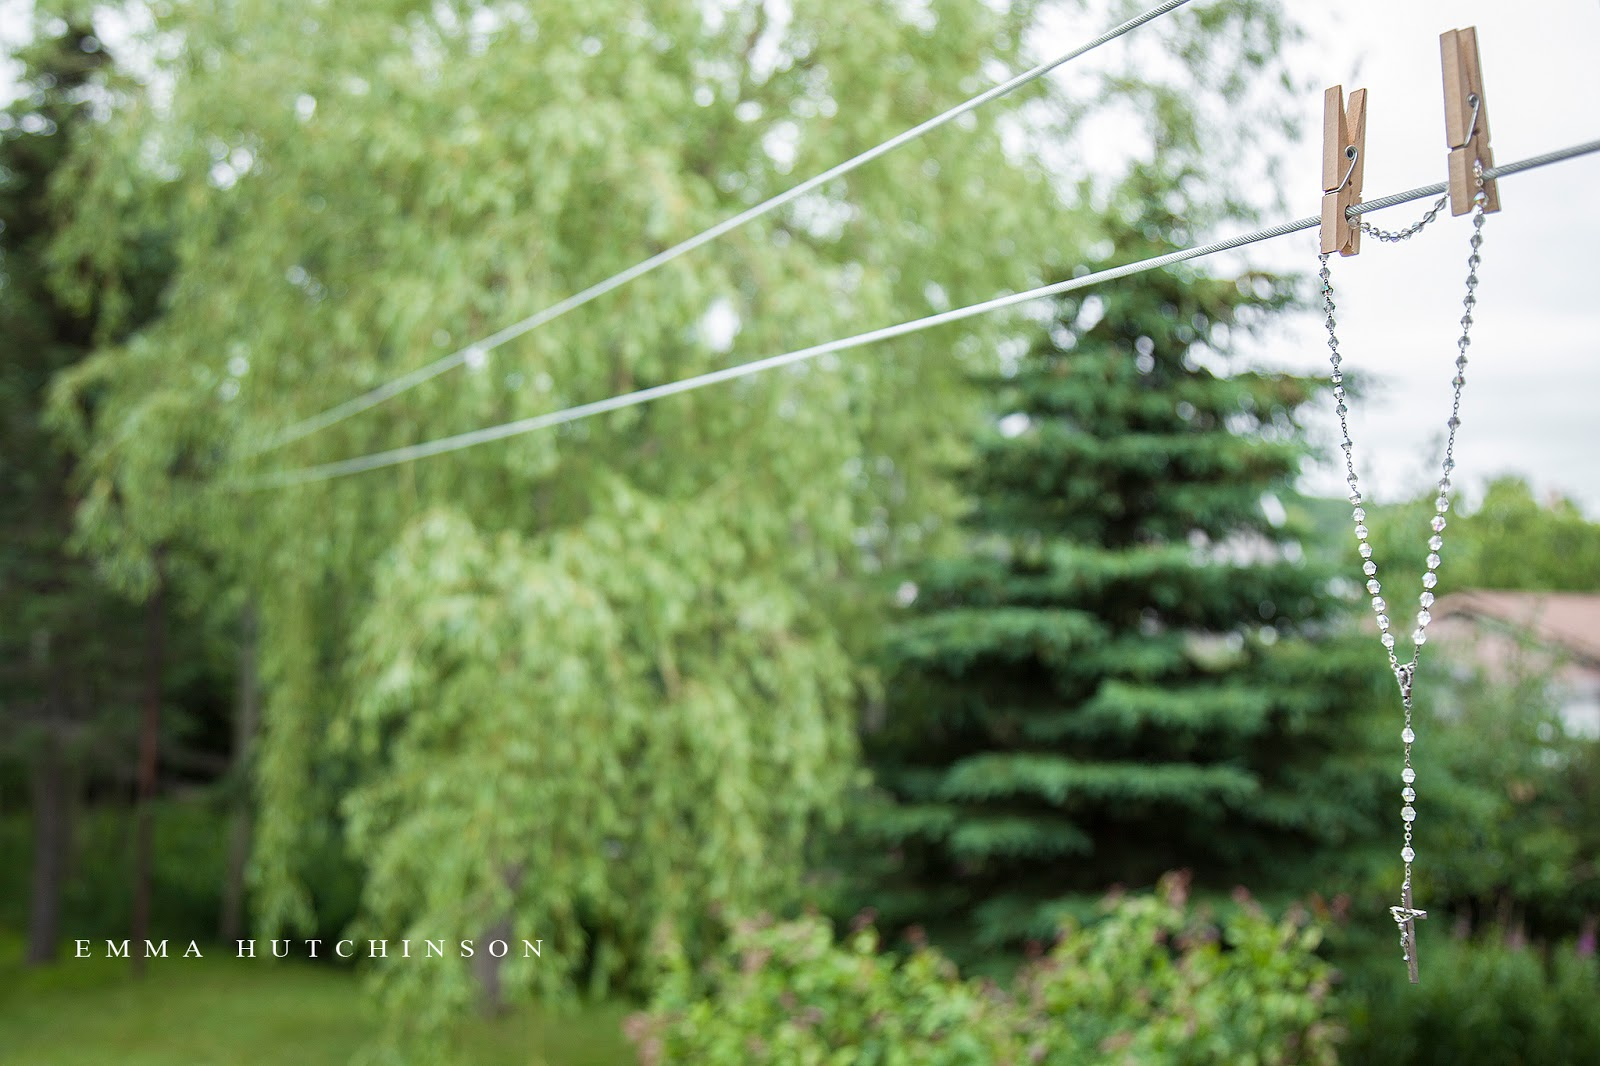 Want perfect weather for your wedding day? Hang prayer beads on the cloths line.